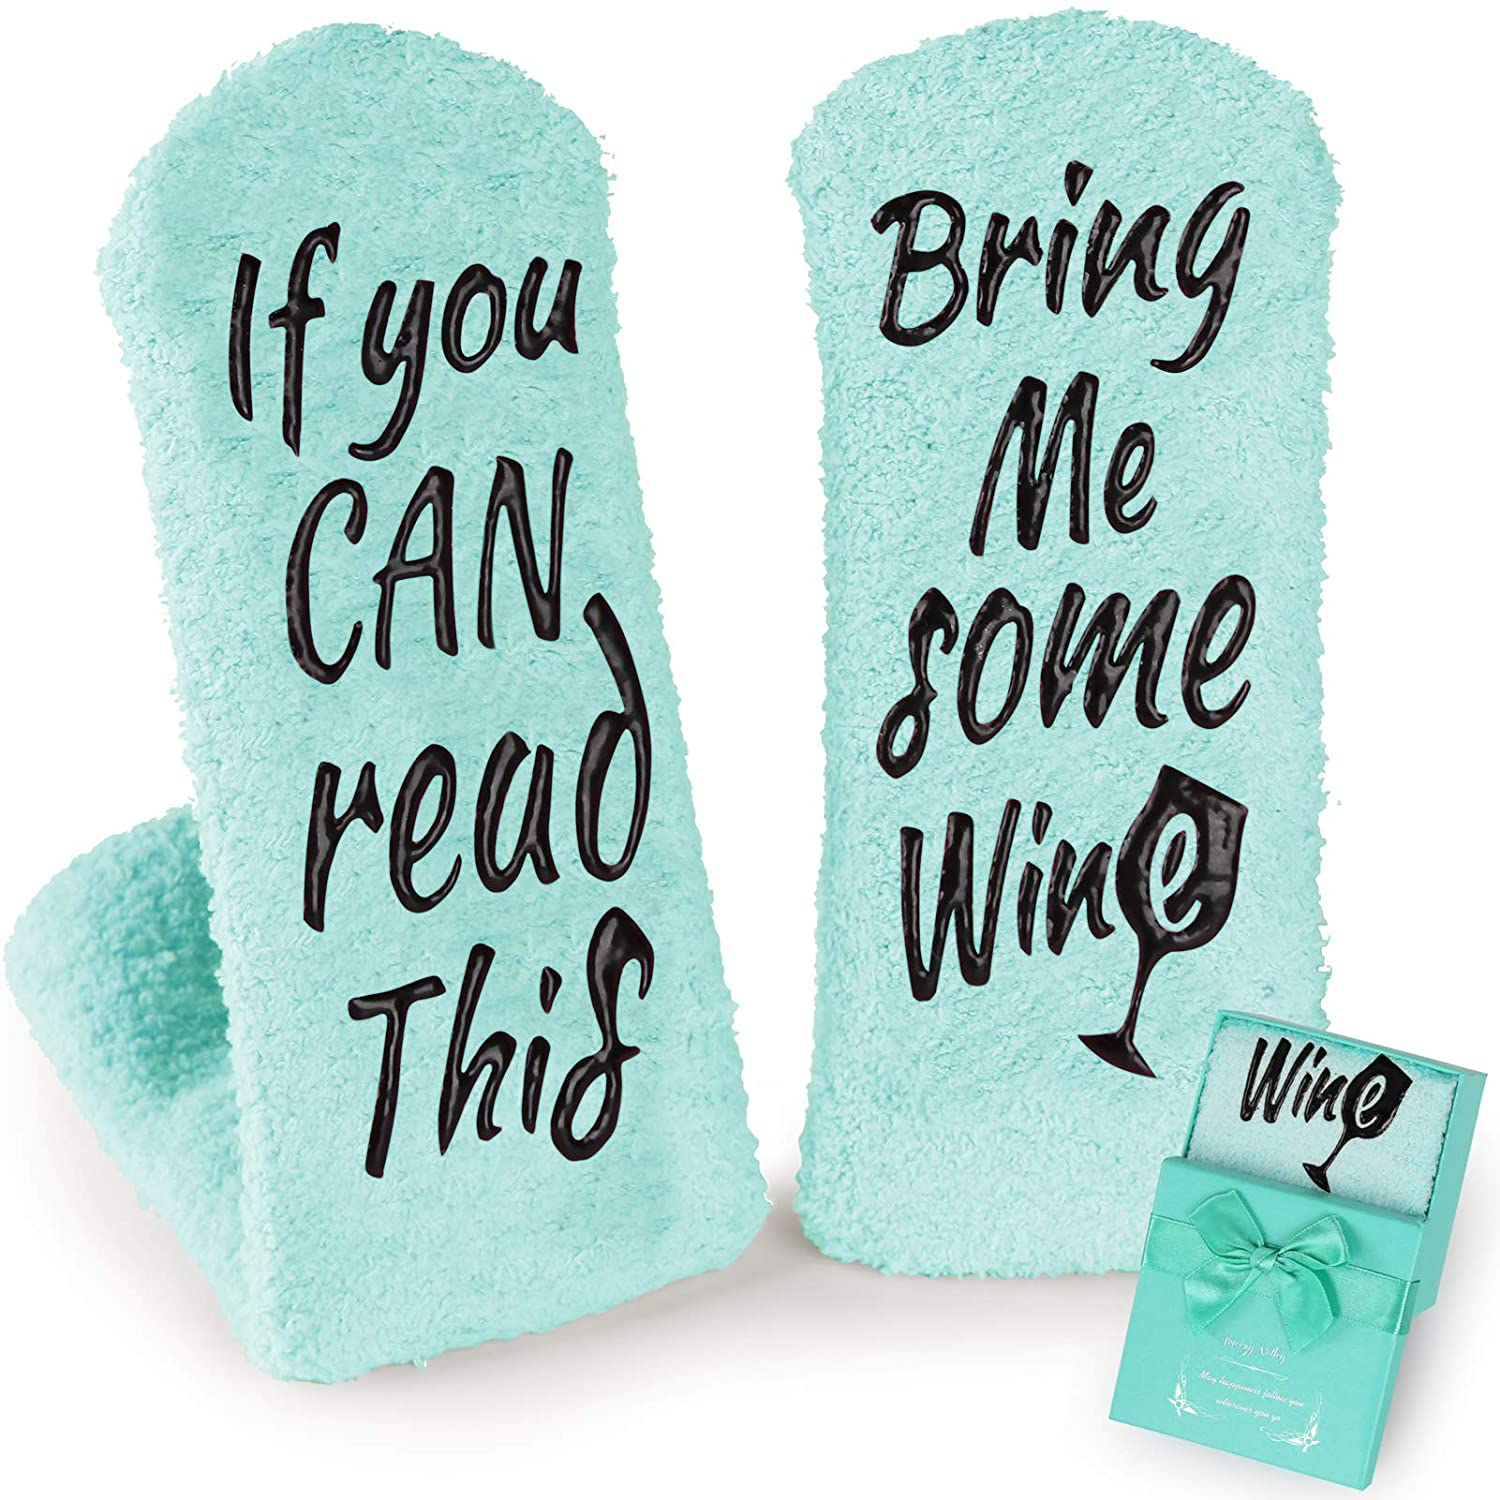 Wine Socks Gifts for Women, Birthday Gifts for Women Friends Female - If You Can Read This Bring Me Some Wine Socks, Funny Grandma Present, for Mom, Wine Accessories Gift Boxes - Teal